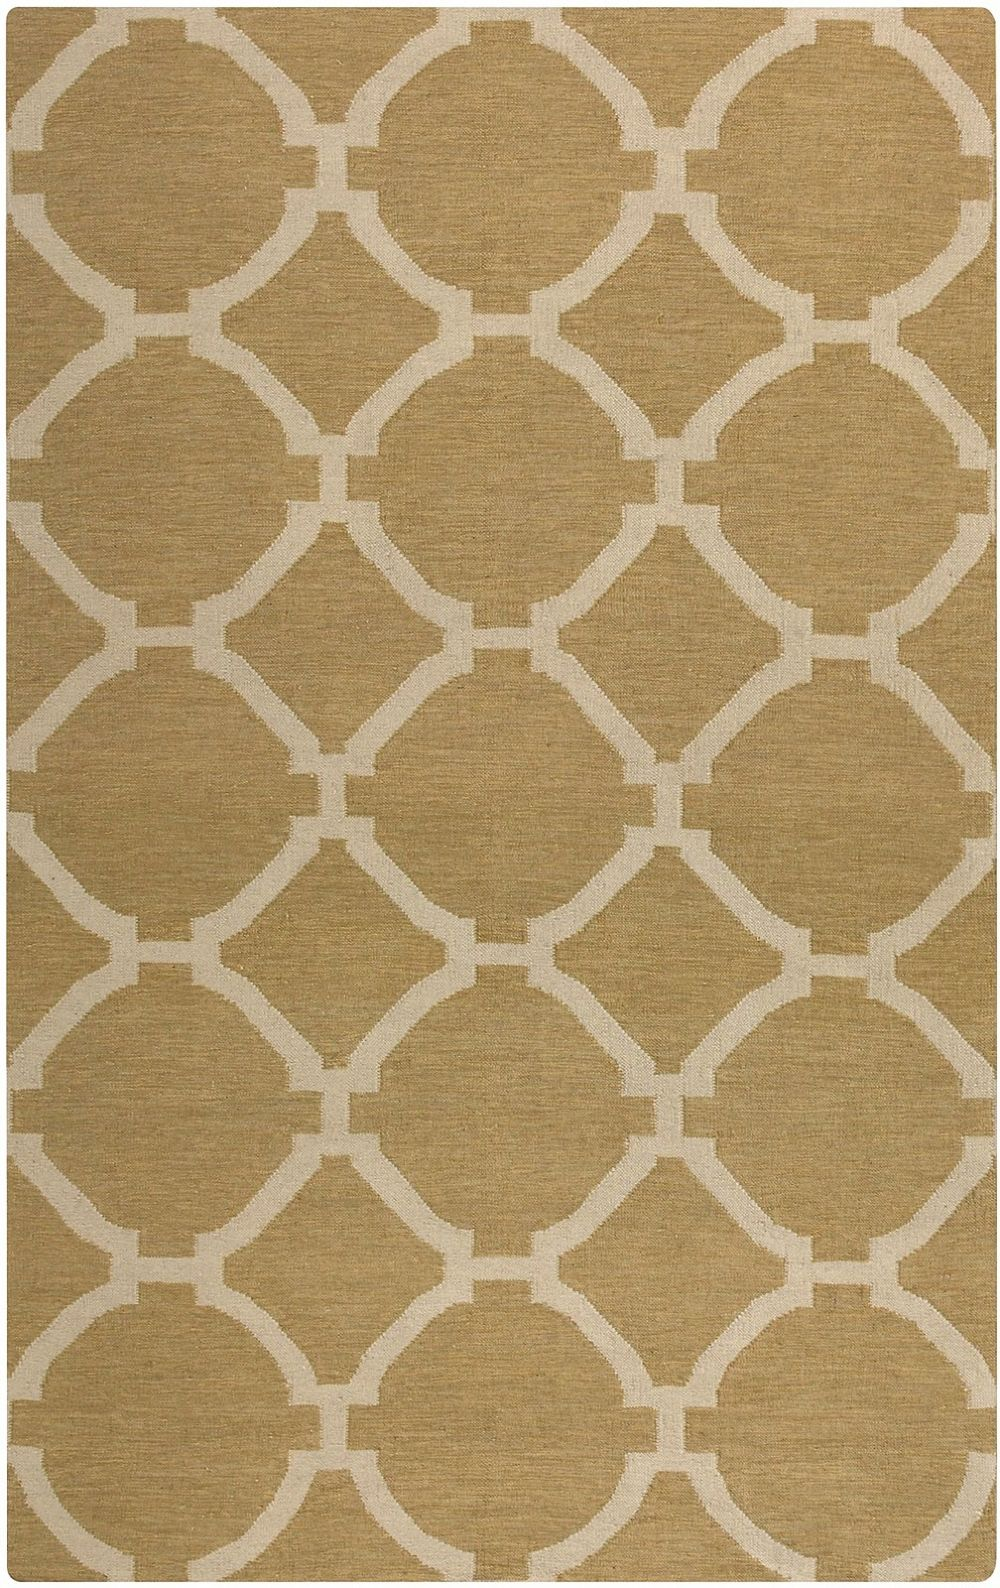 uttermost bermuda contemporary area rug collection